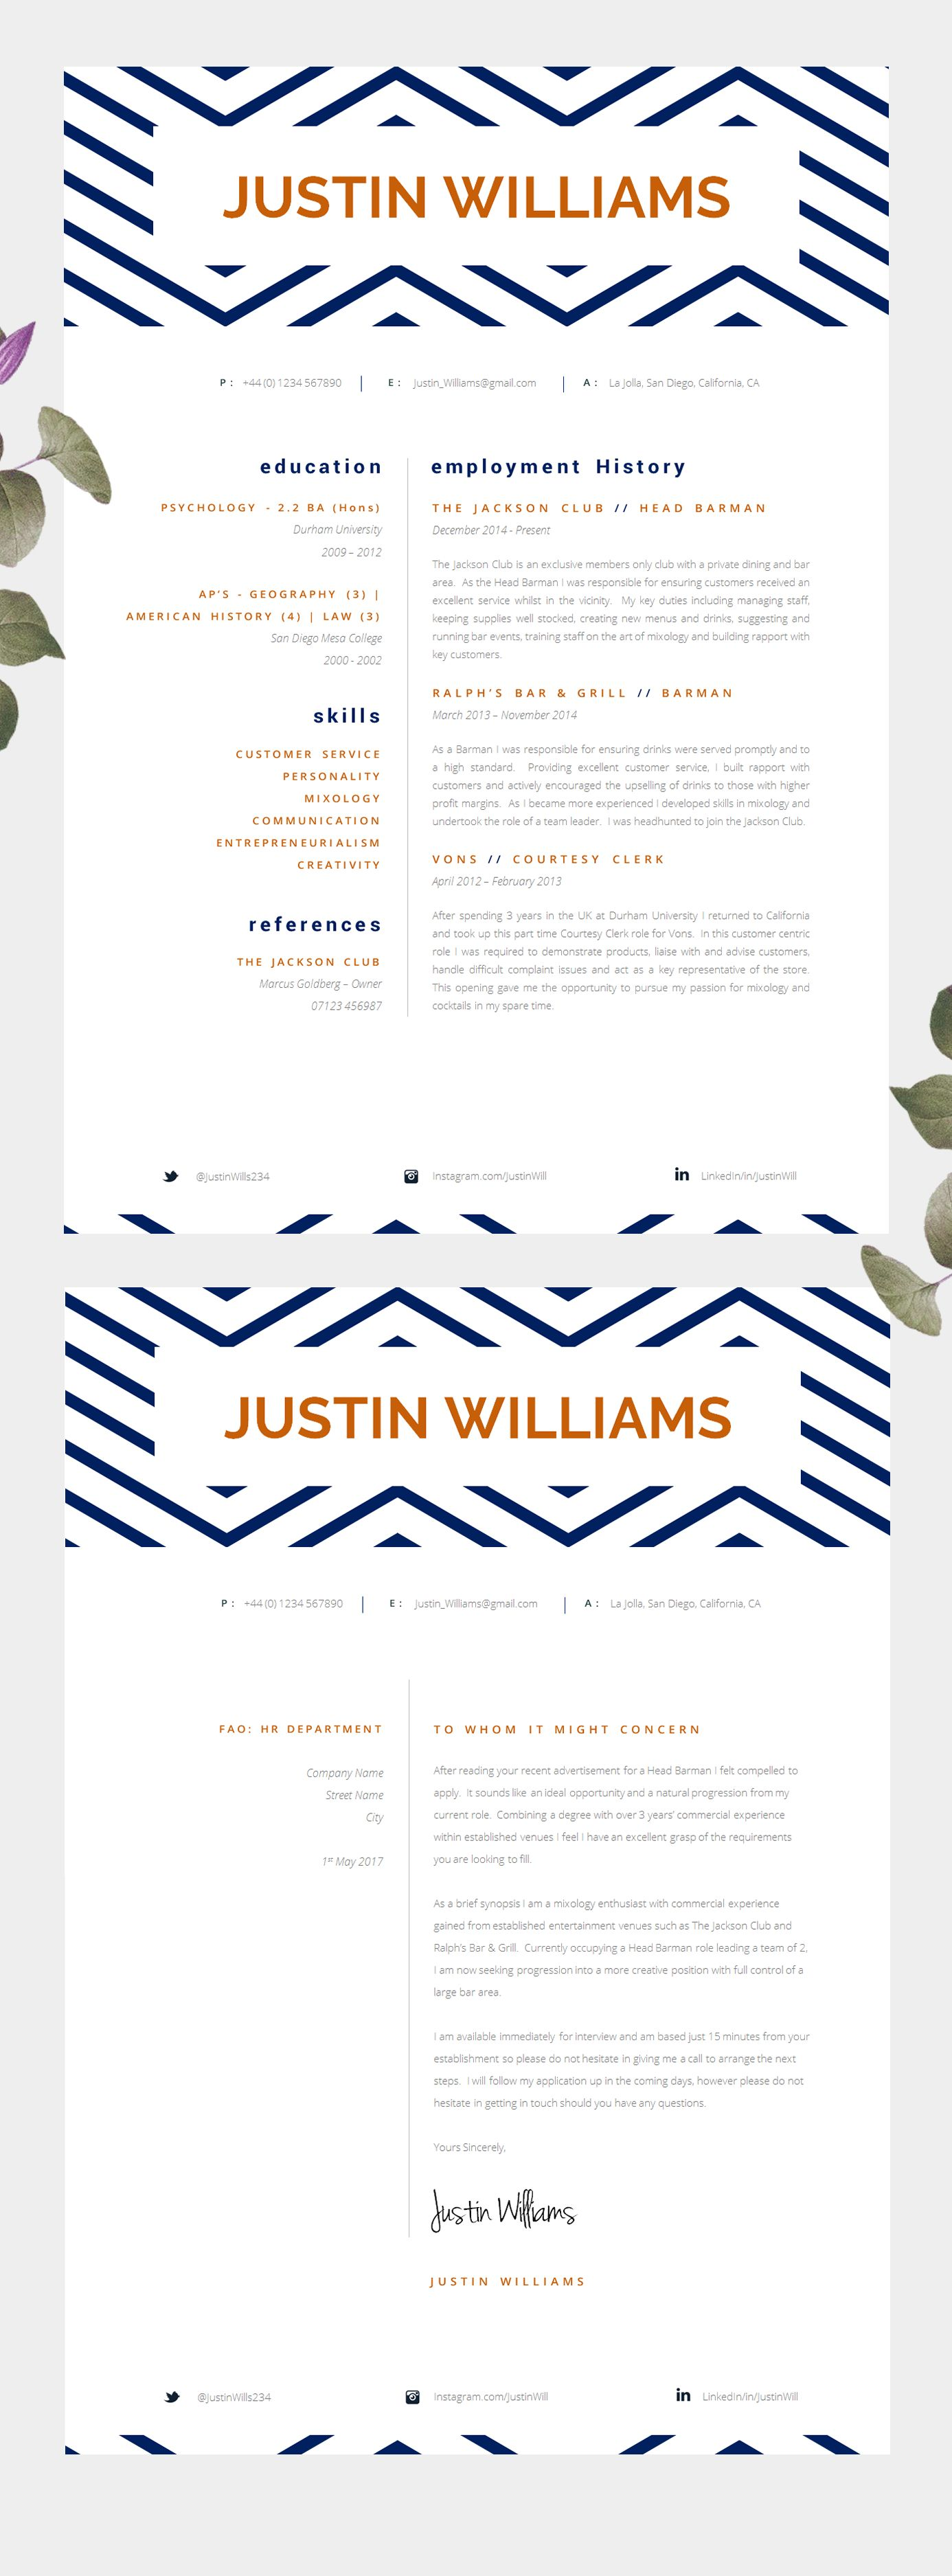 Creative Single Page Resume Template Short Resume Template Perfect For Graduates Students College Leavers Etc Cv Template Aquinas Jobansogning Job Projekter